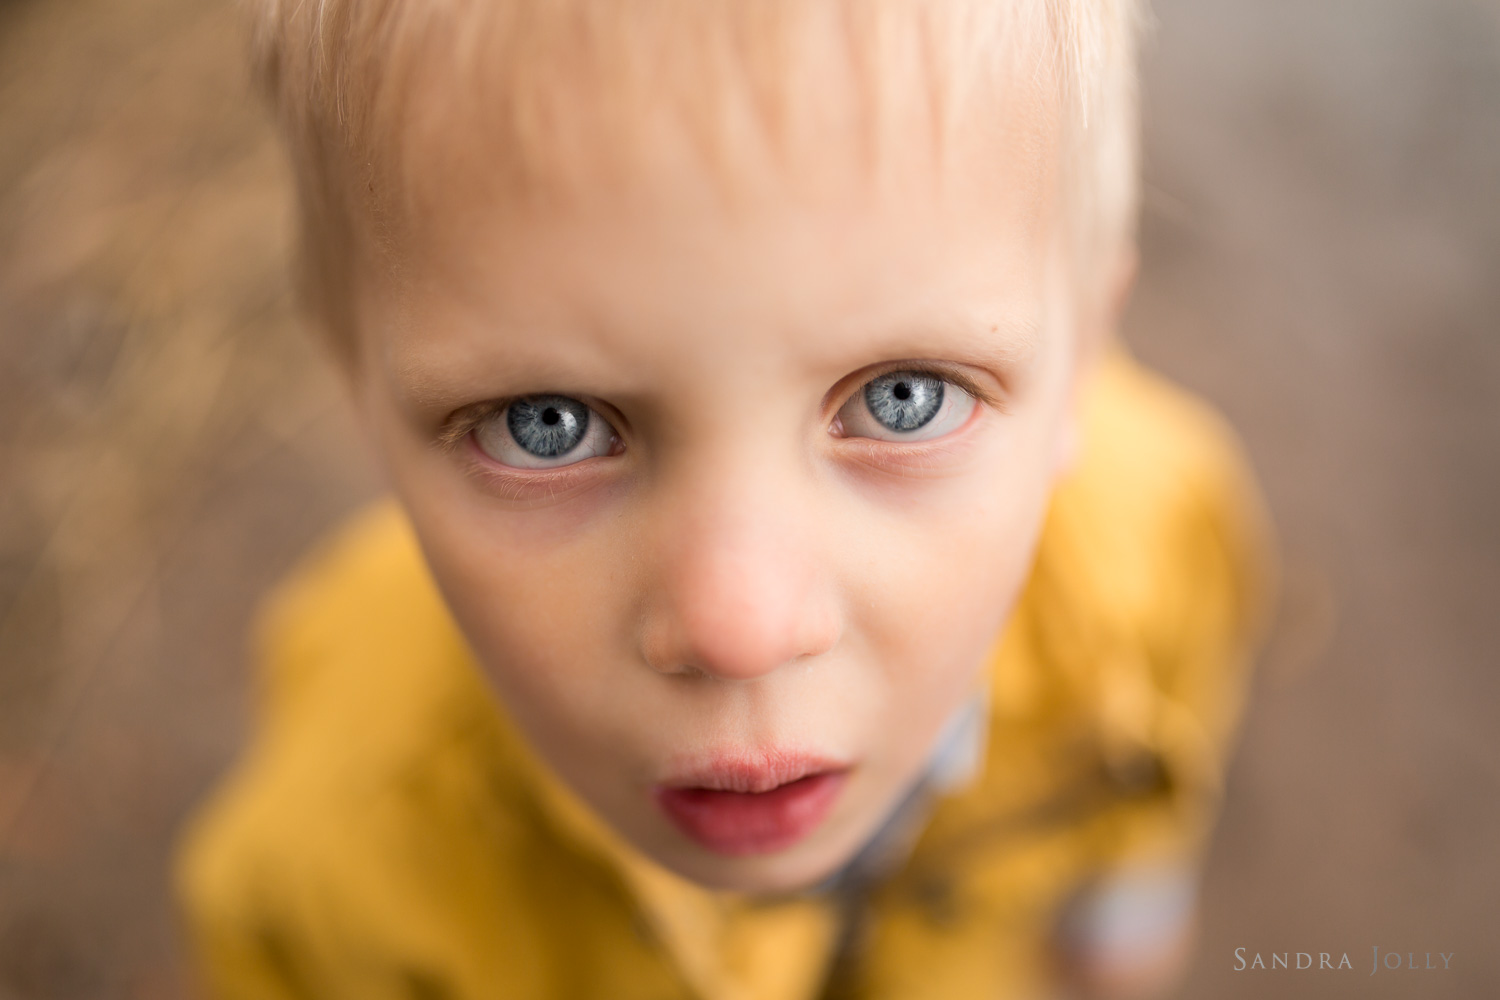 blue-eyed-boy-by-bra-familjefotograf-sandra-jolly.jpg